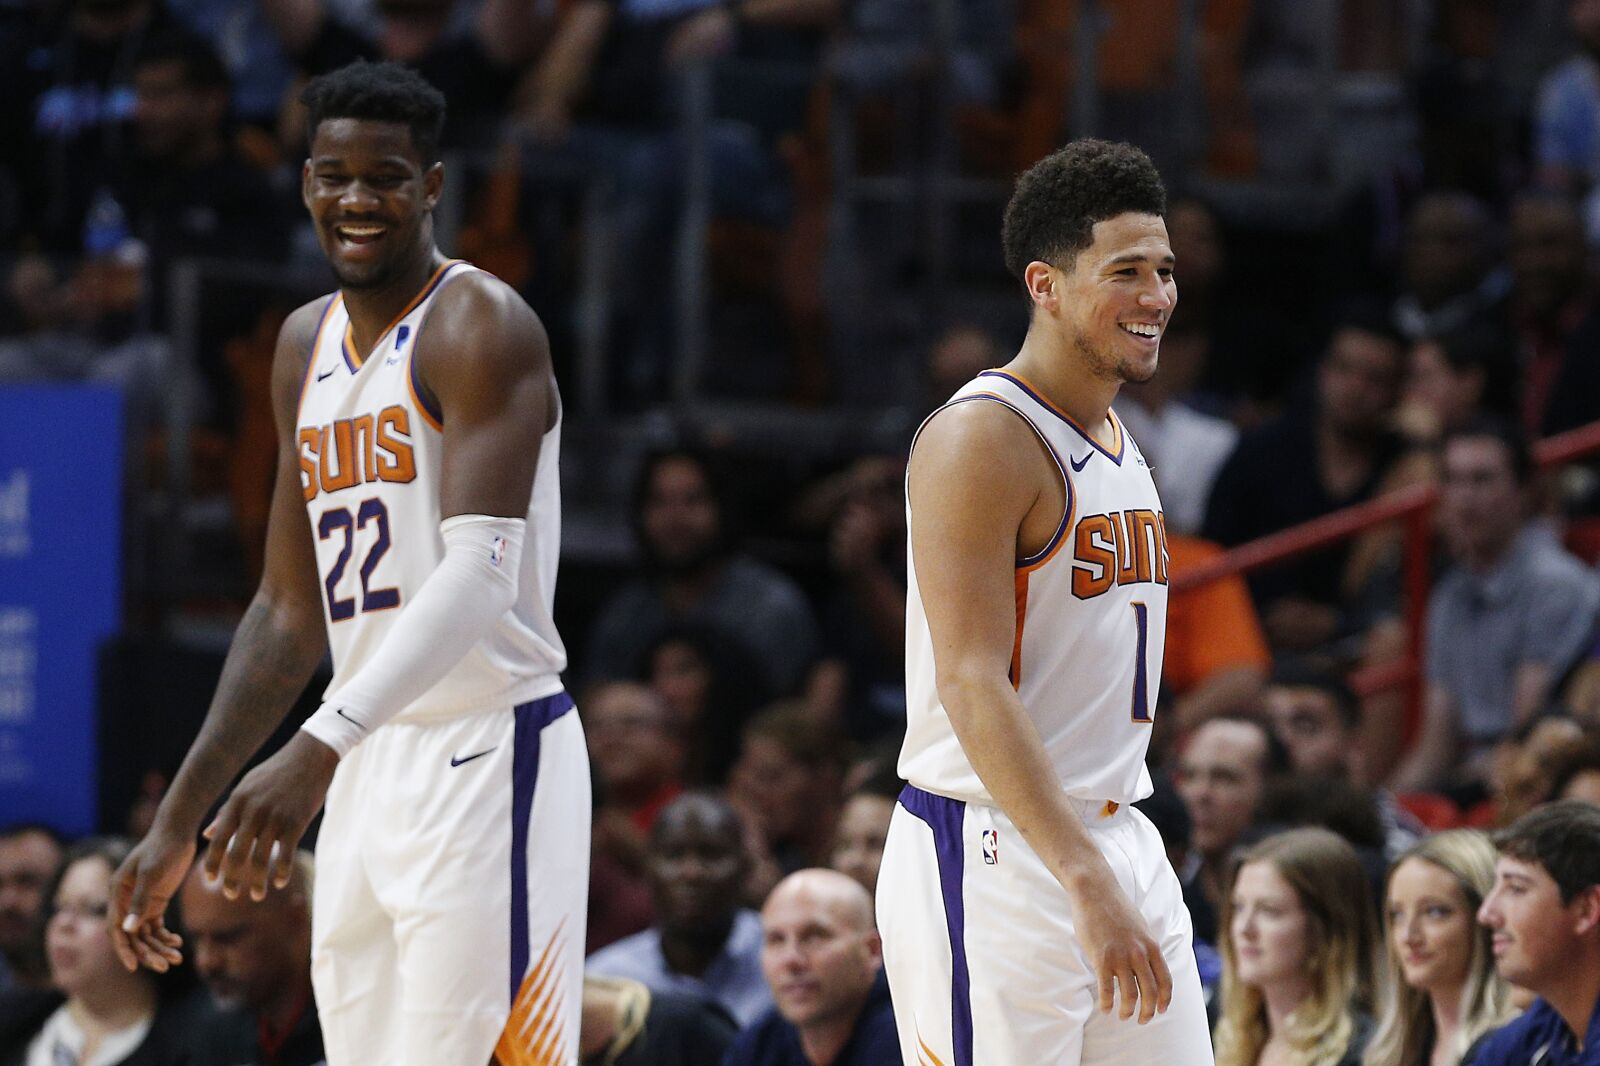 Comparing Booker and Ayton to the NBA's top duos